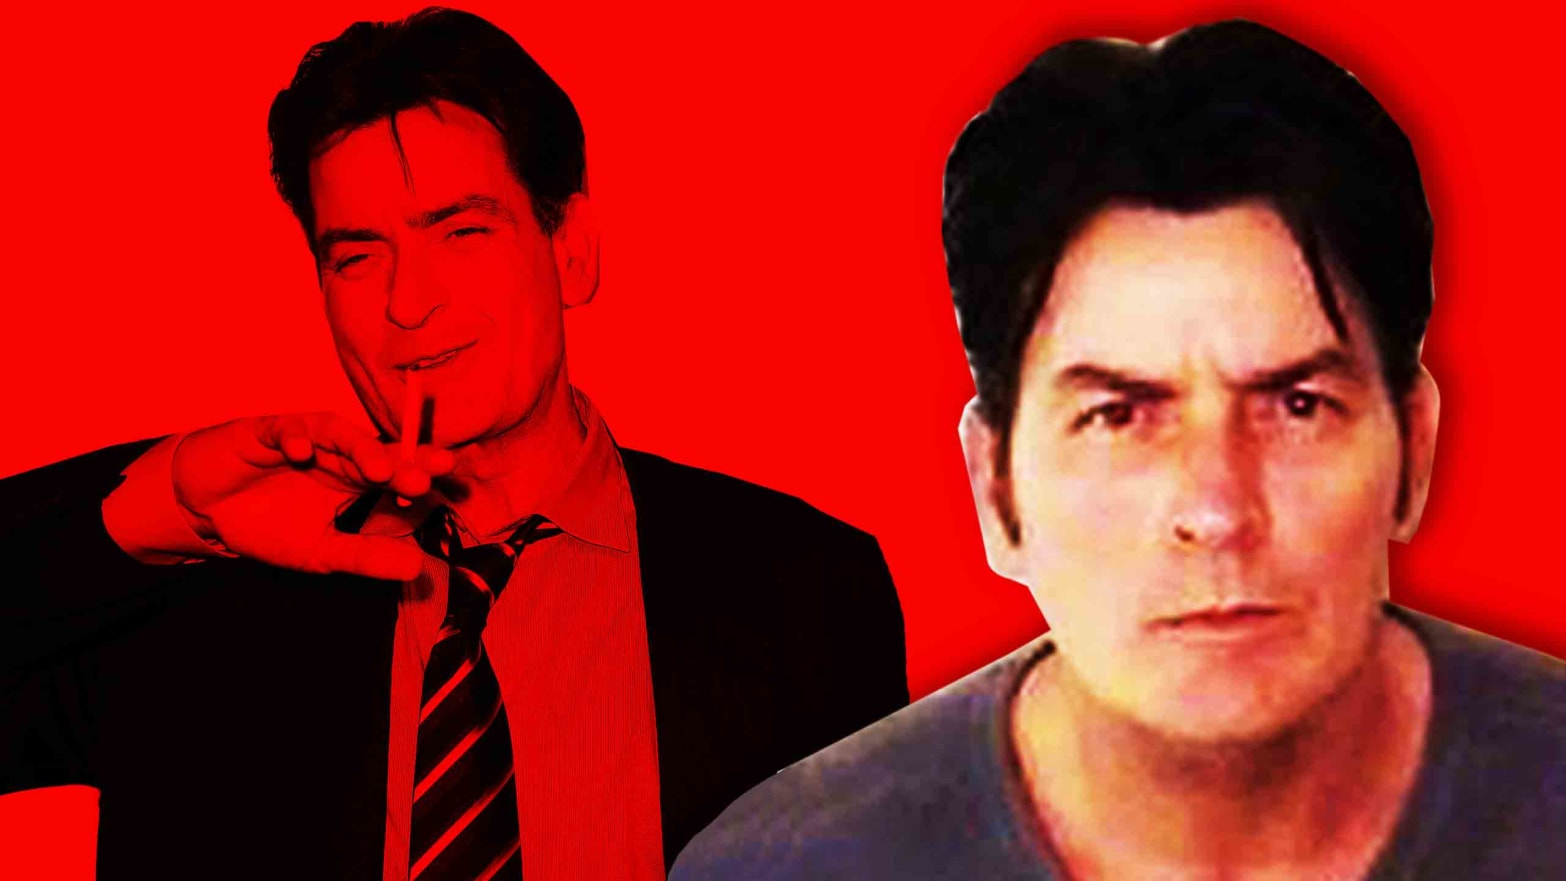 Facts About Charlie Sheen